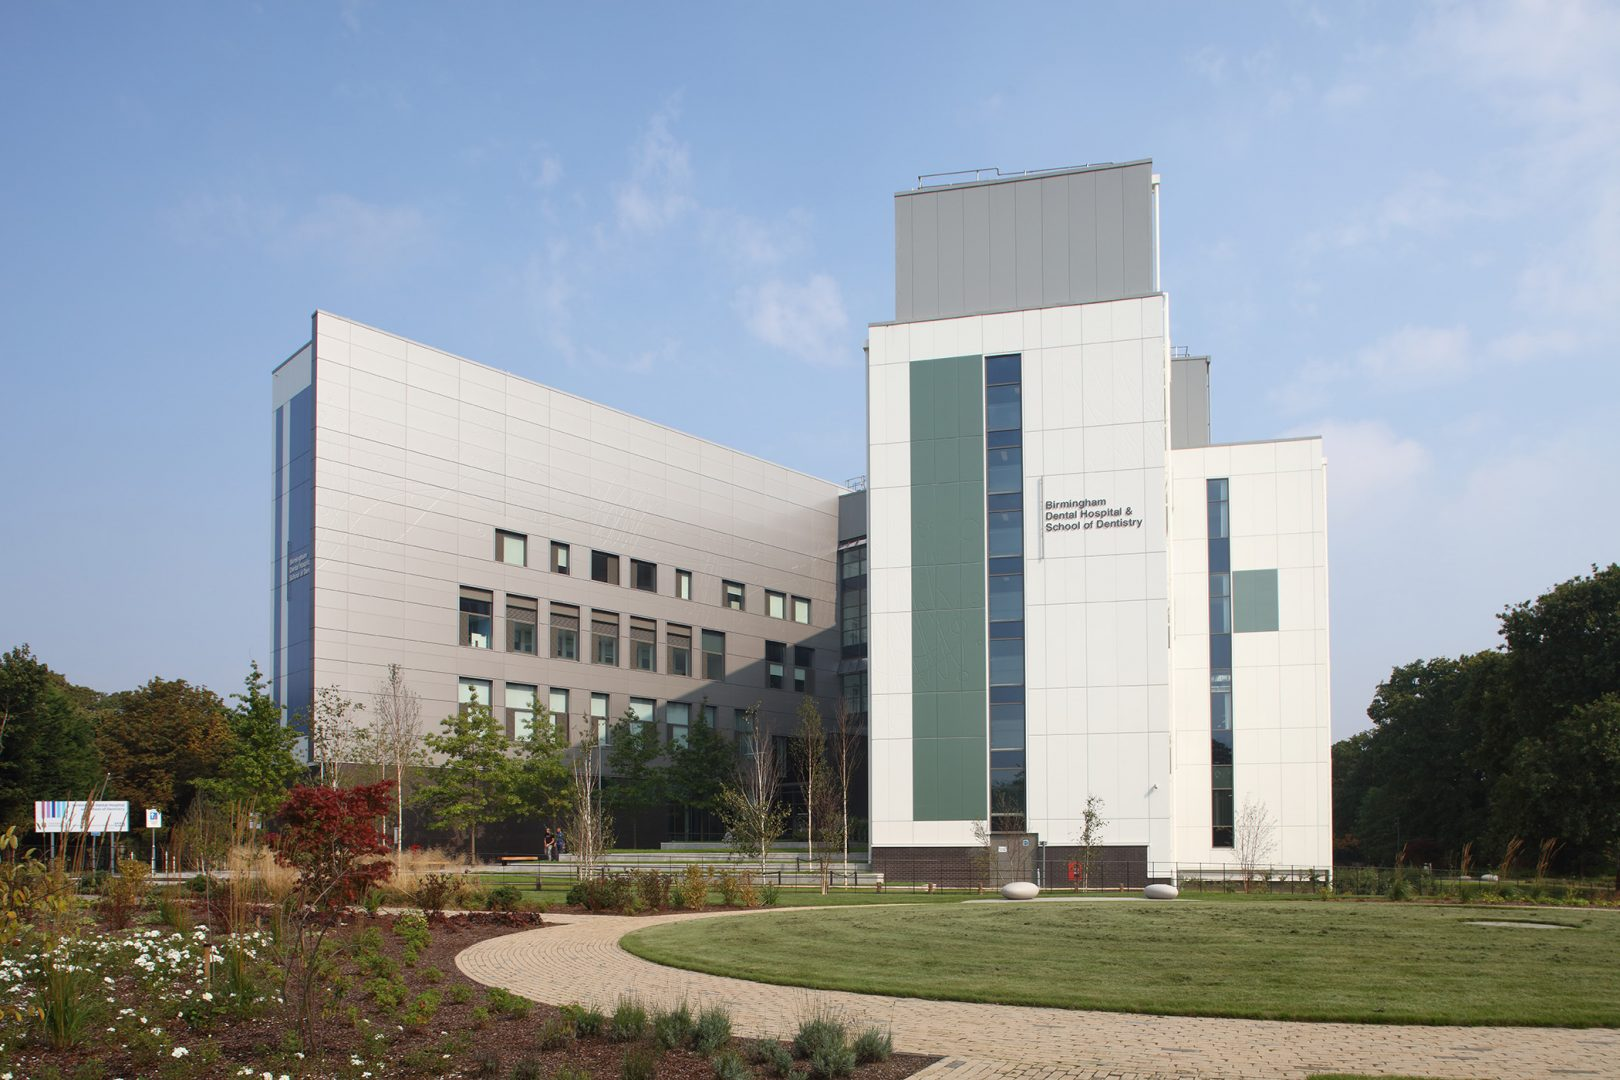 Midland Lead Birmingham Dental Hospital Case Study